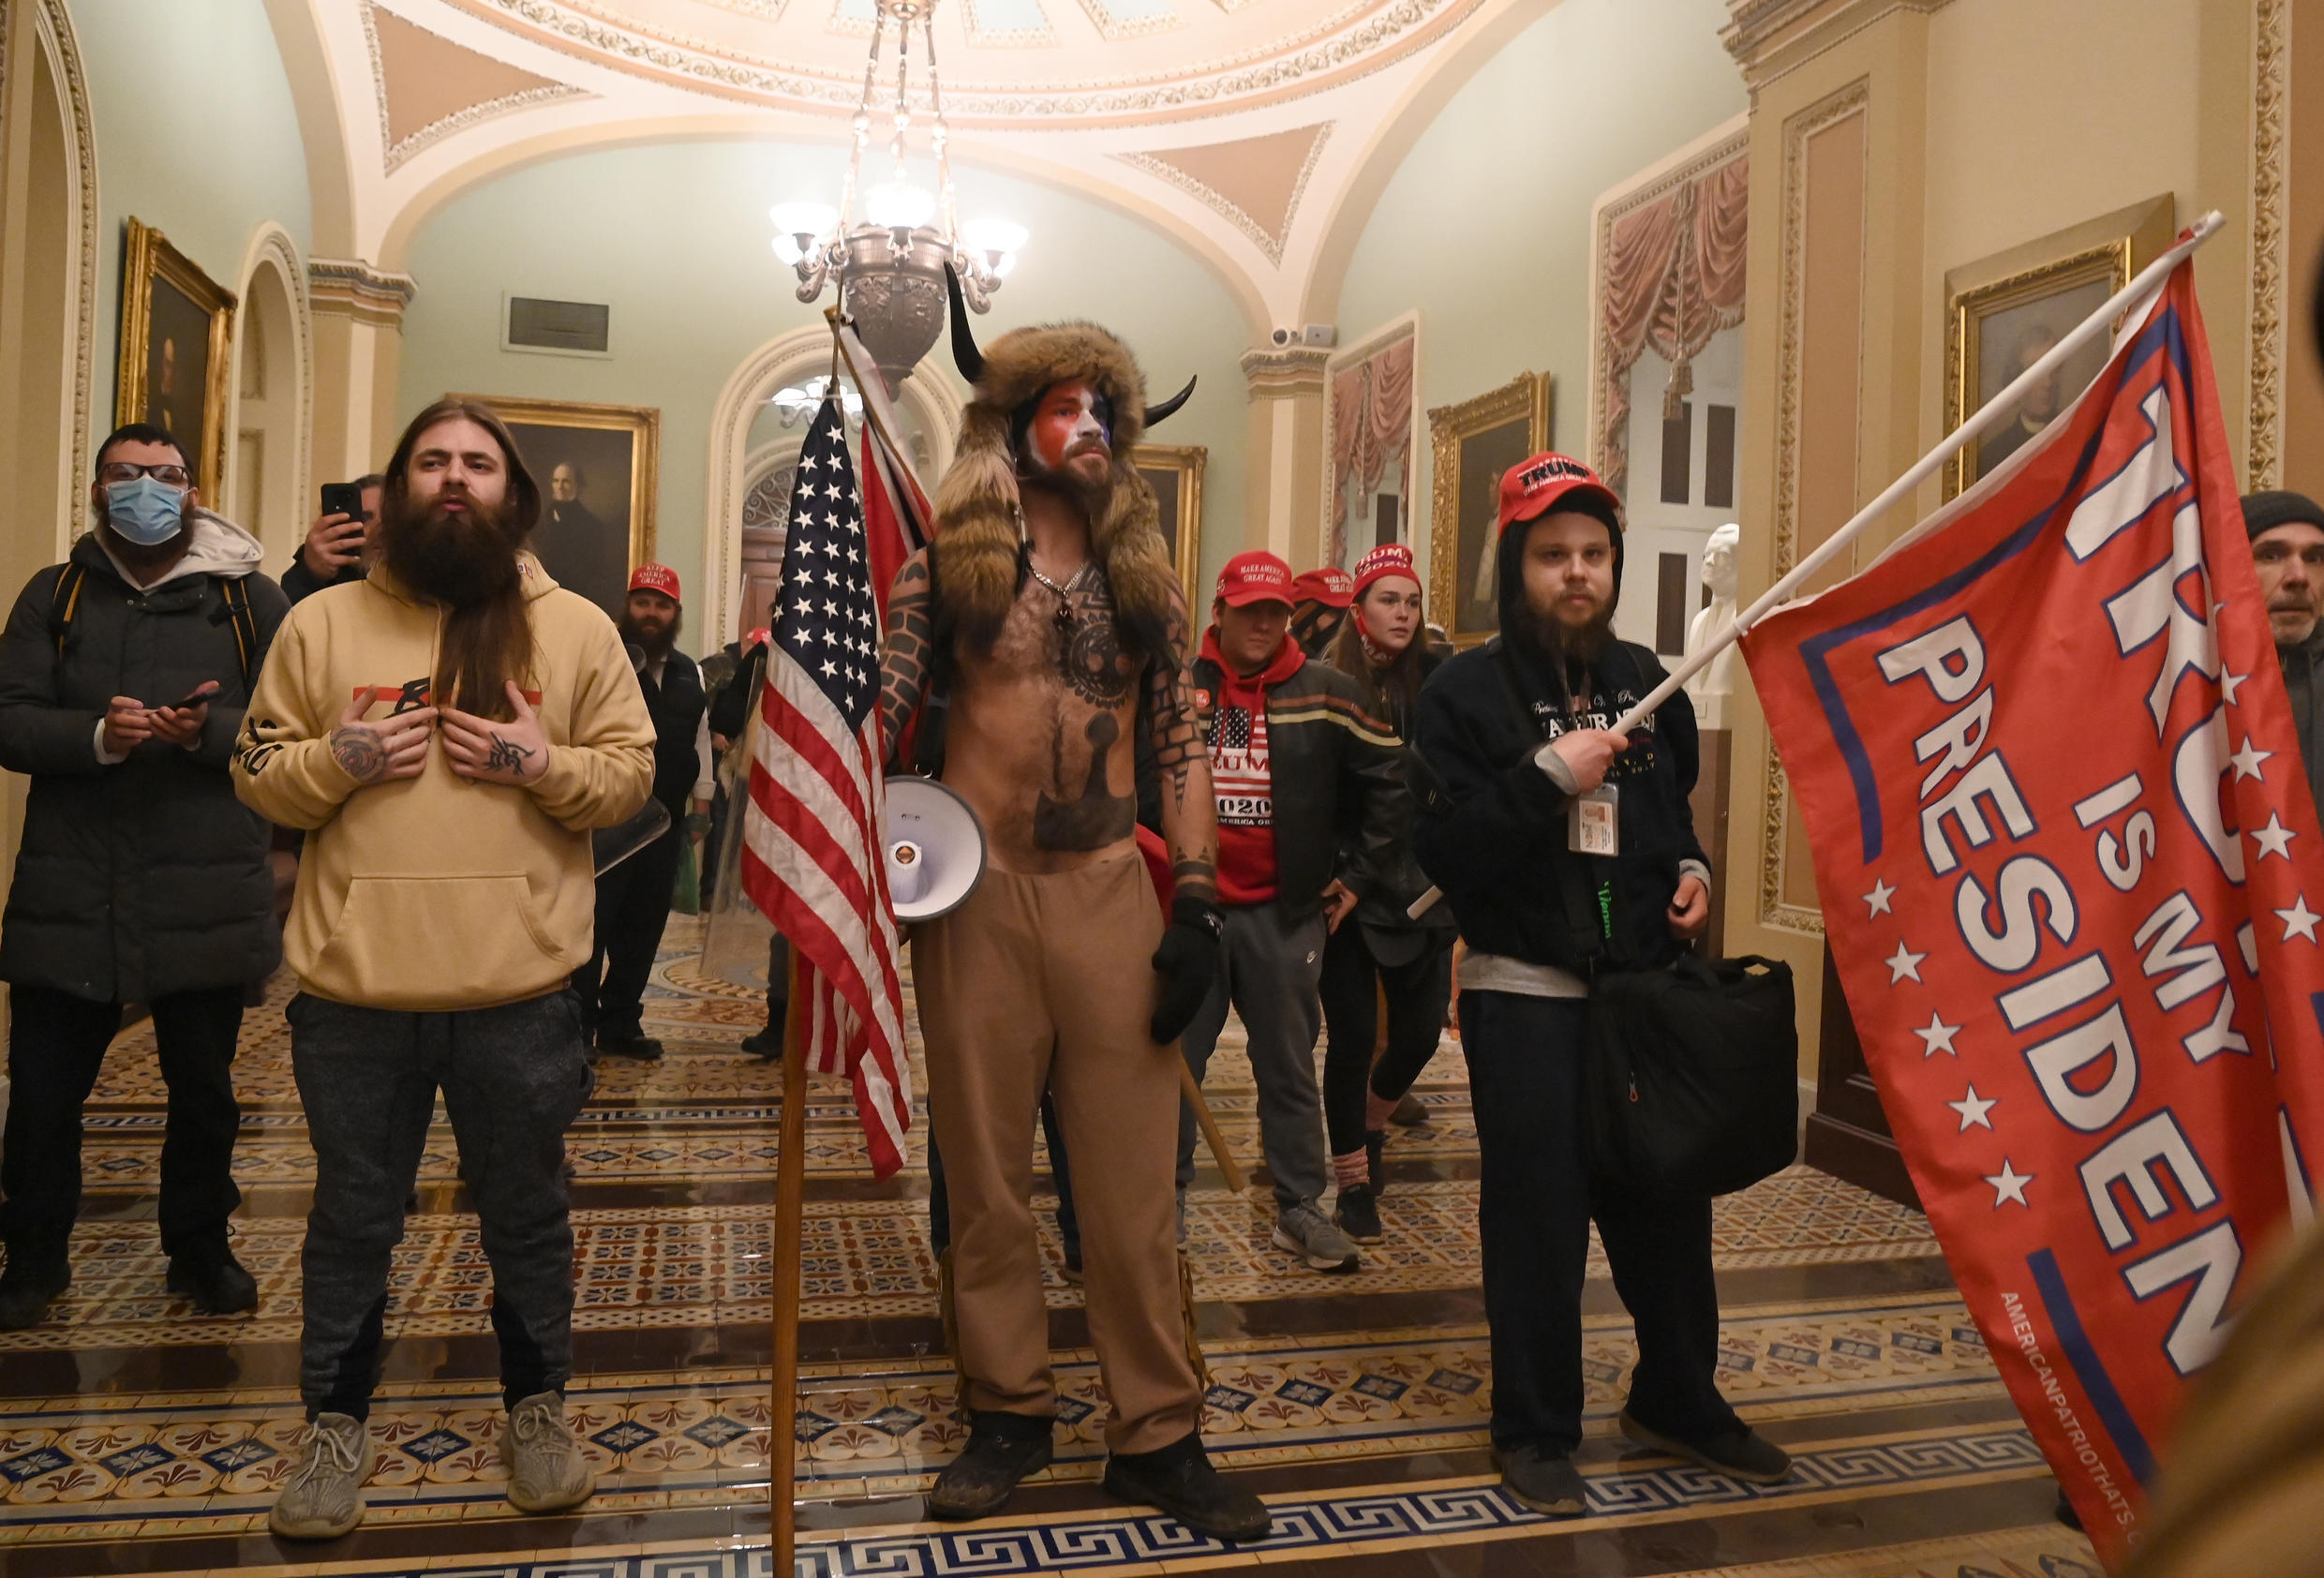 Supporters of President Donald Trump storm the US Capitol on January 6, 2021, in Washington, DC.